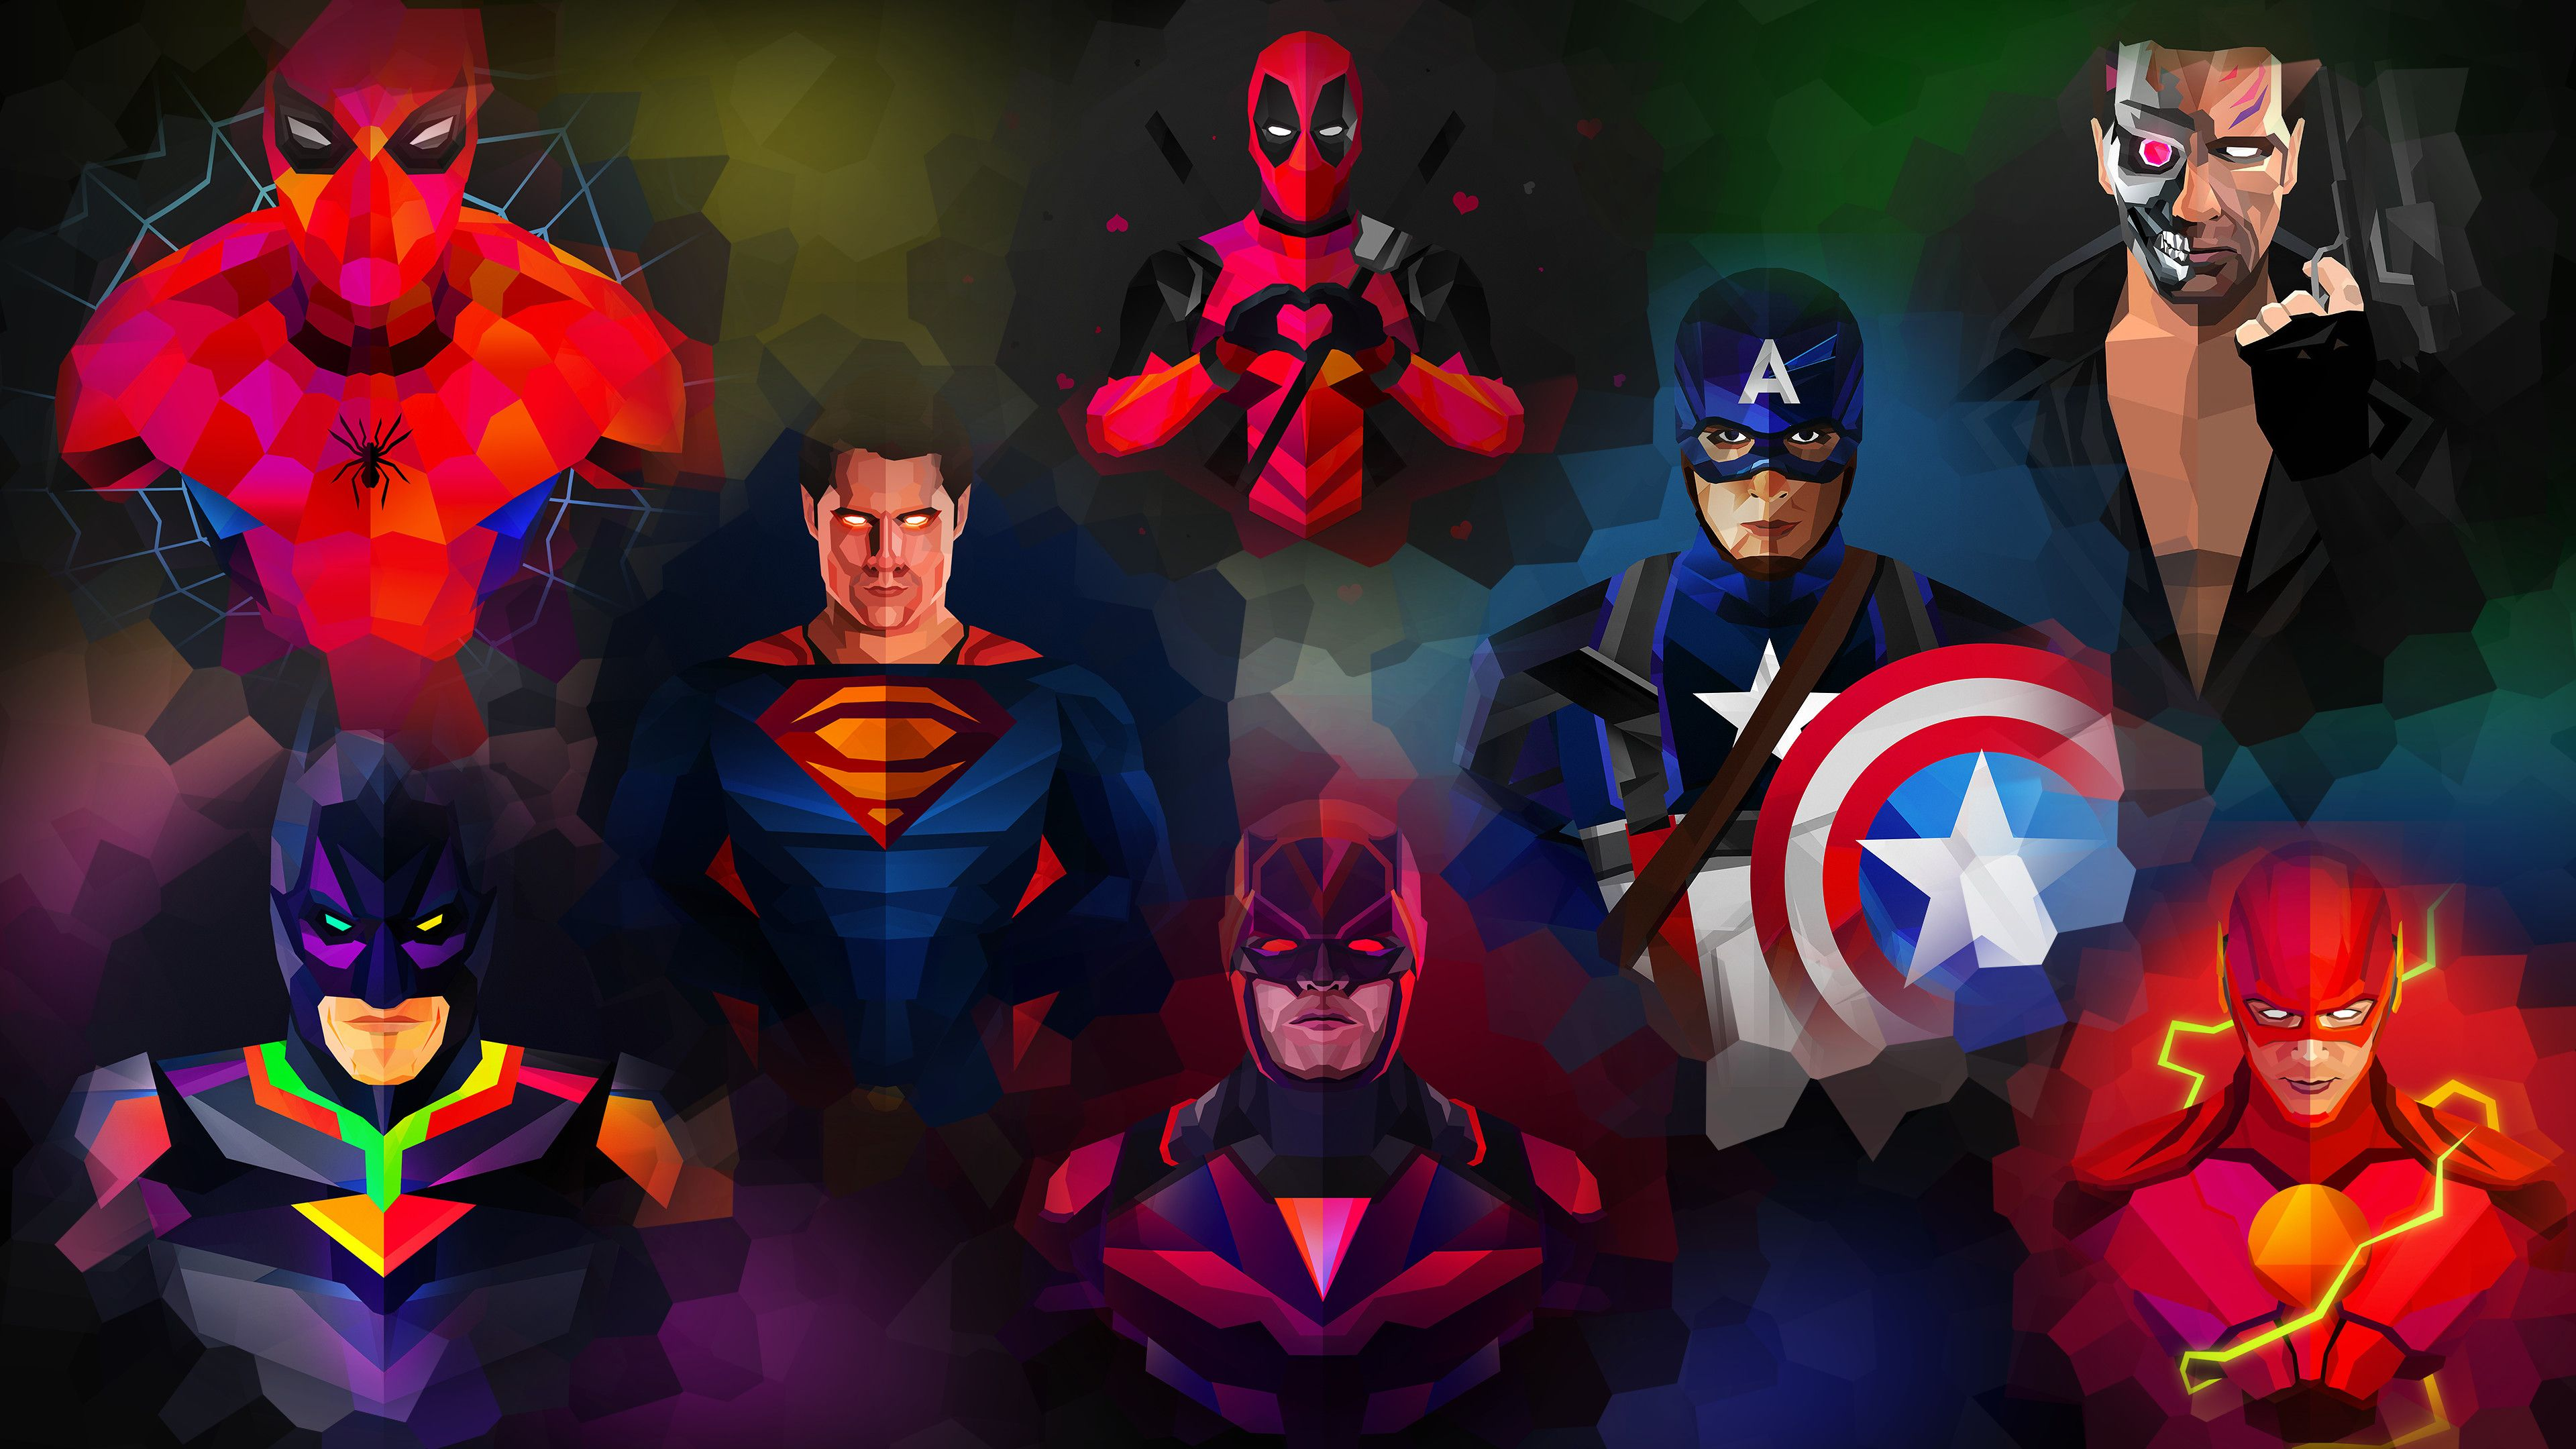 4k Superhero Wallpapers Top Free 4k Superhero Backgrounds